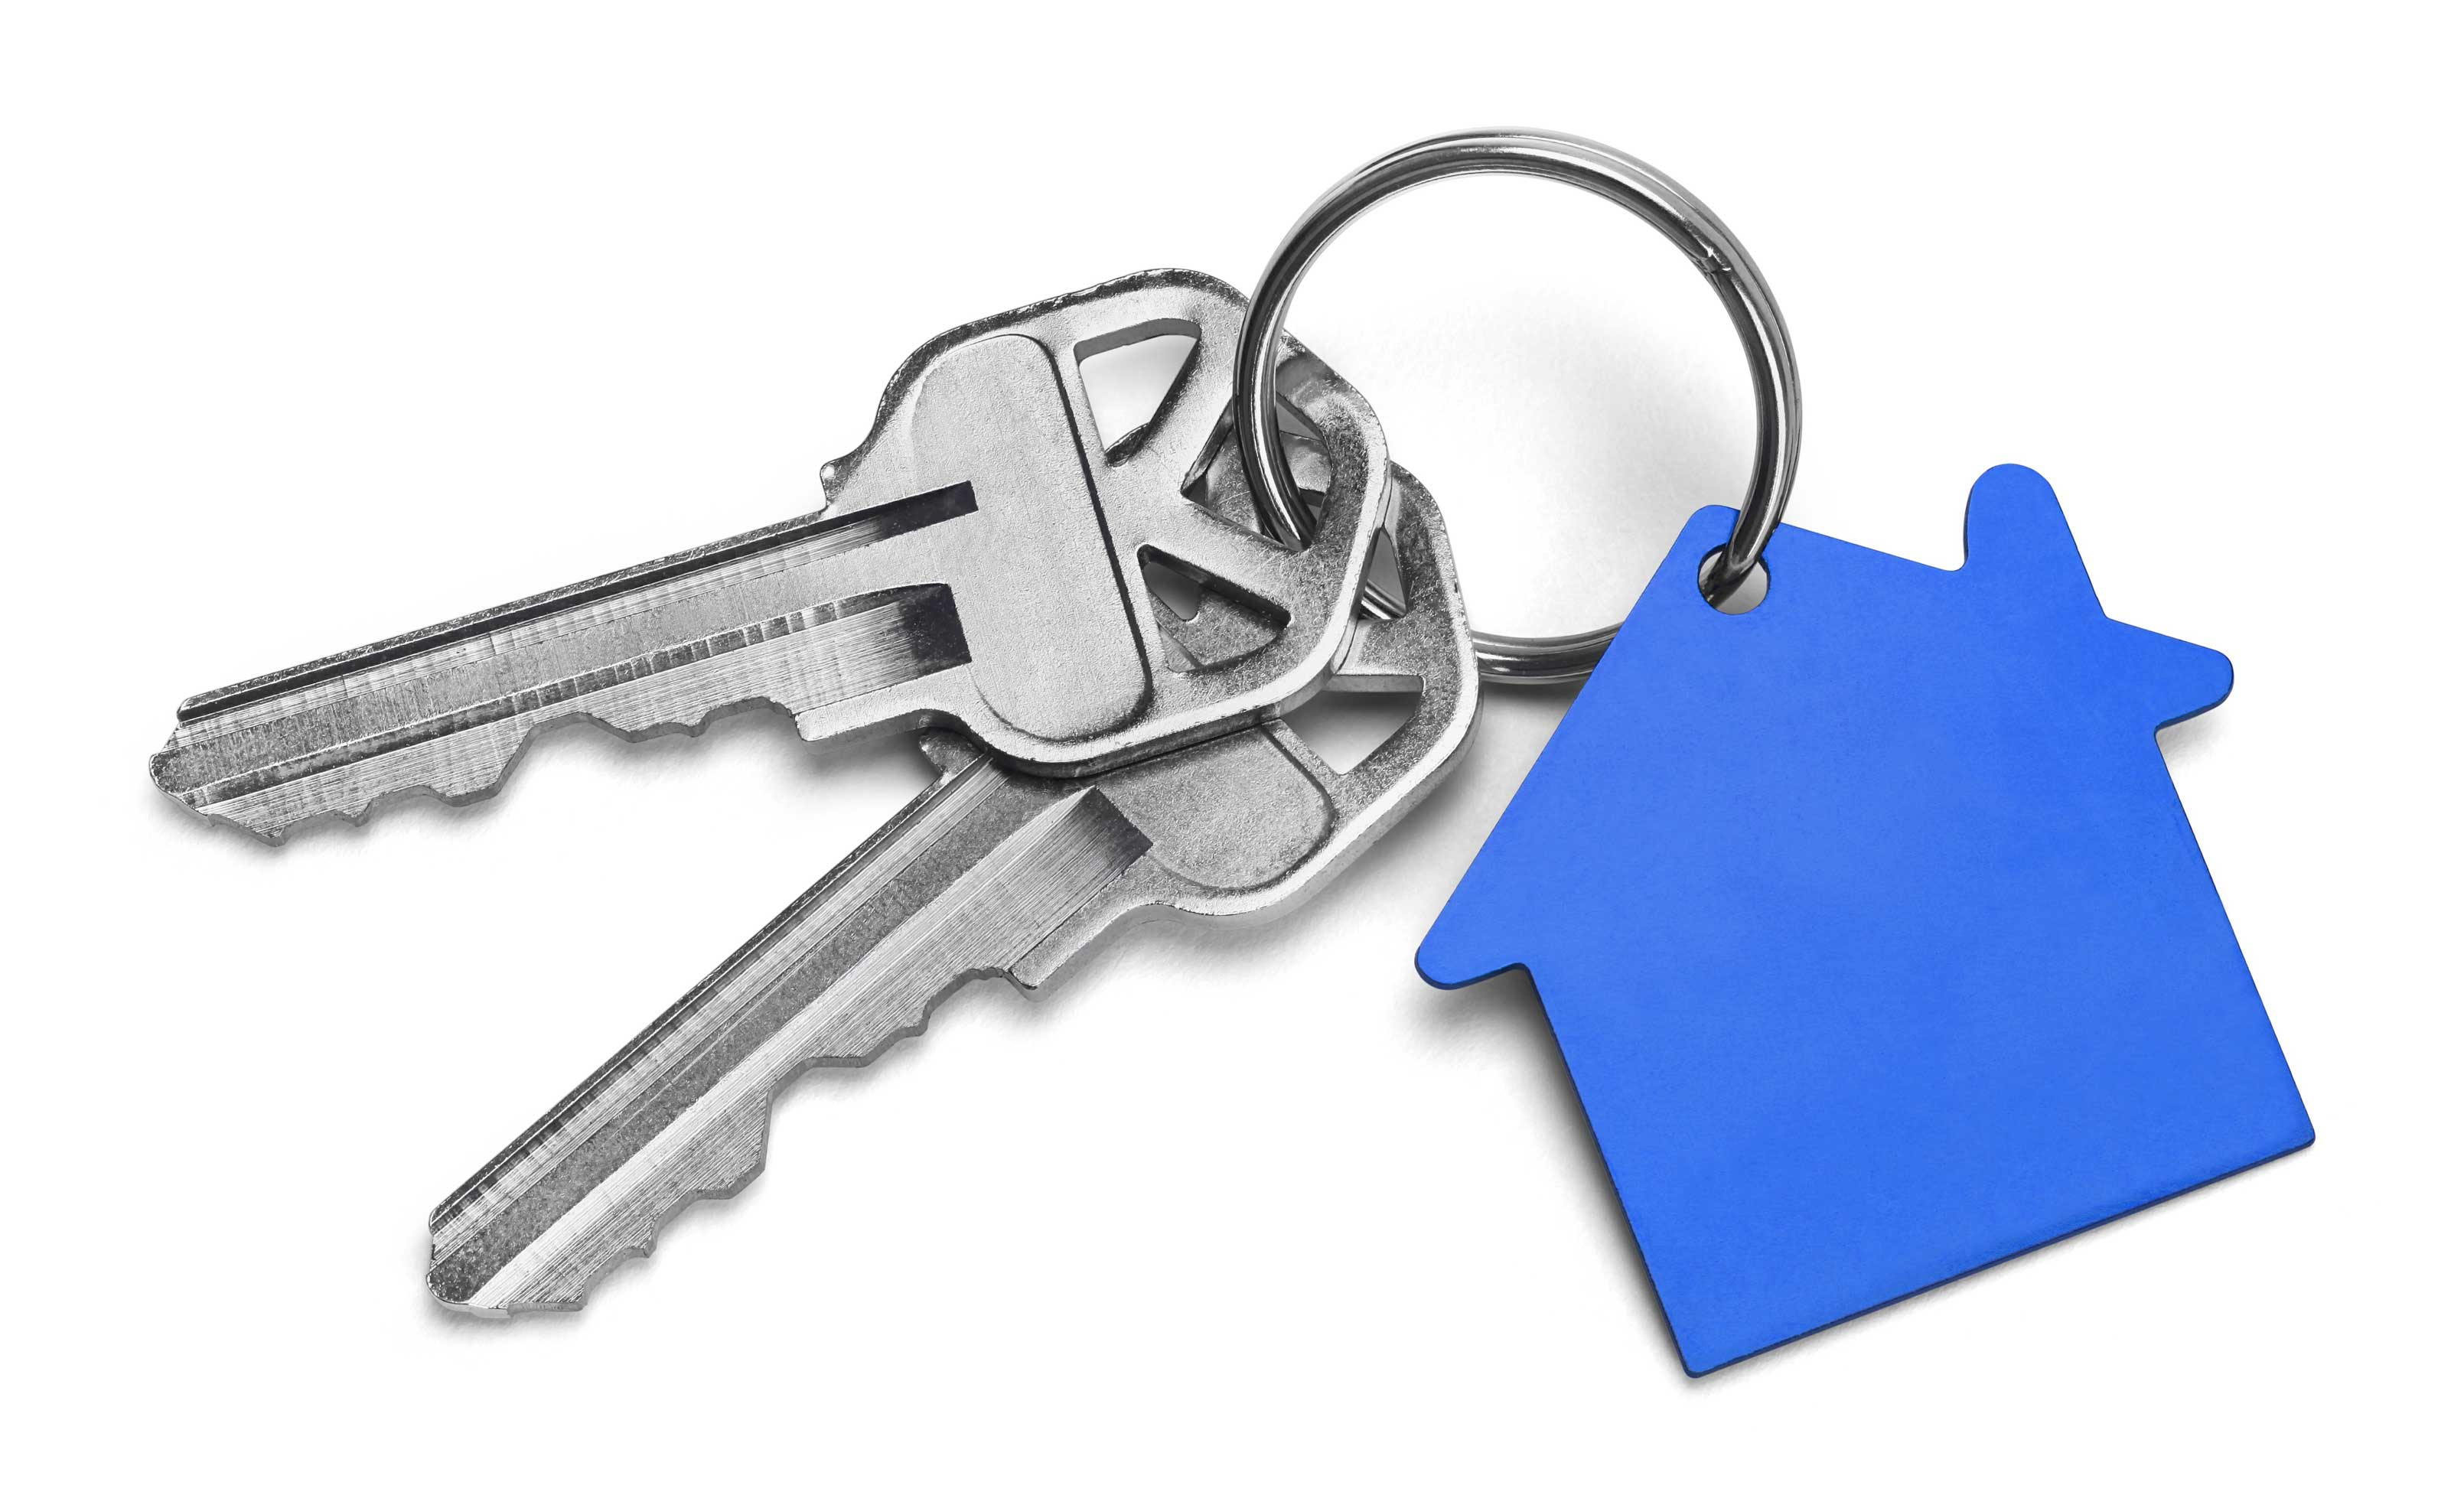 Brunswick-Crossing-Realtors-Keys-to-New-Home.jpg